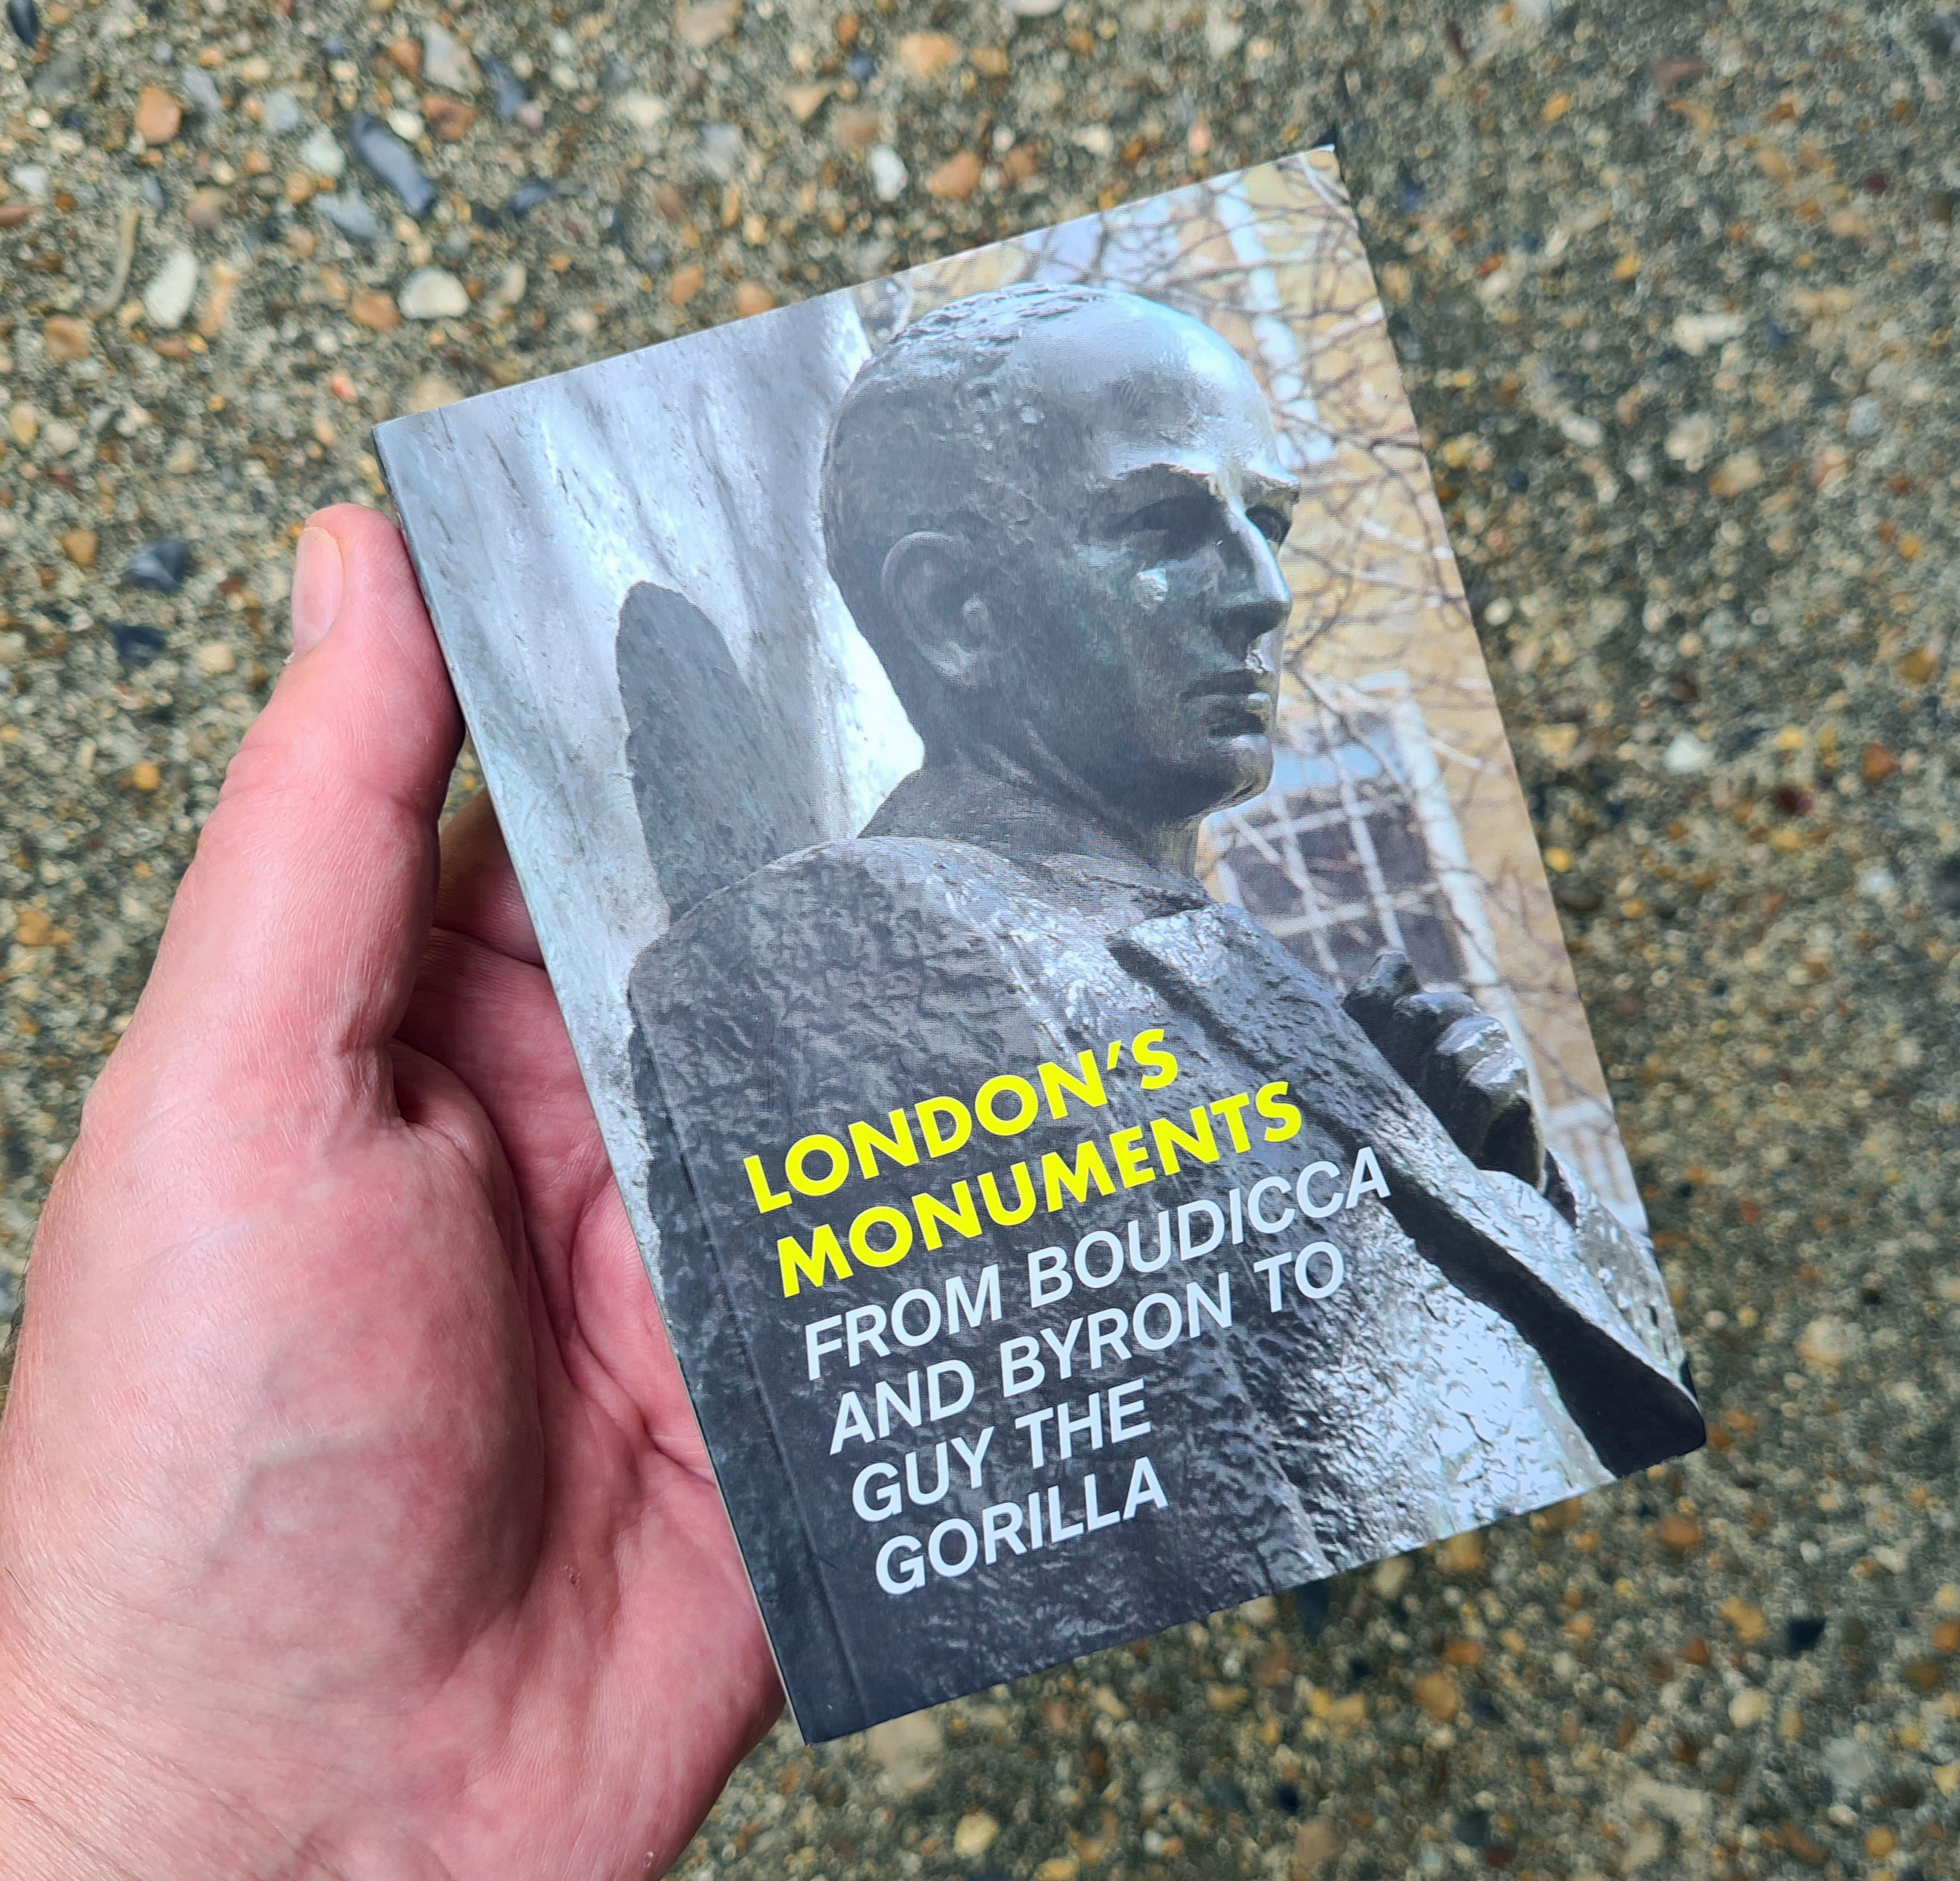 London's Monuments, by Andrew Kershman